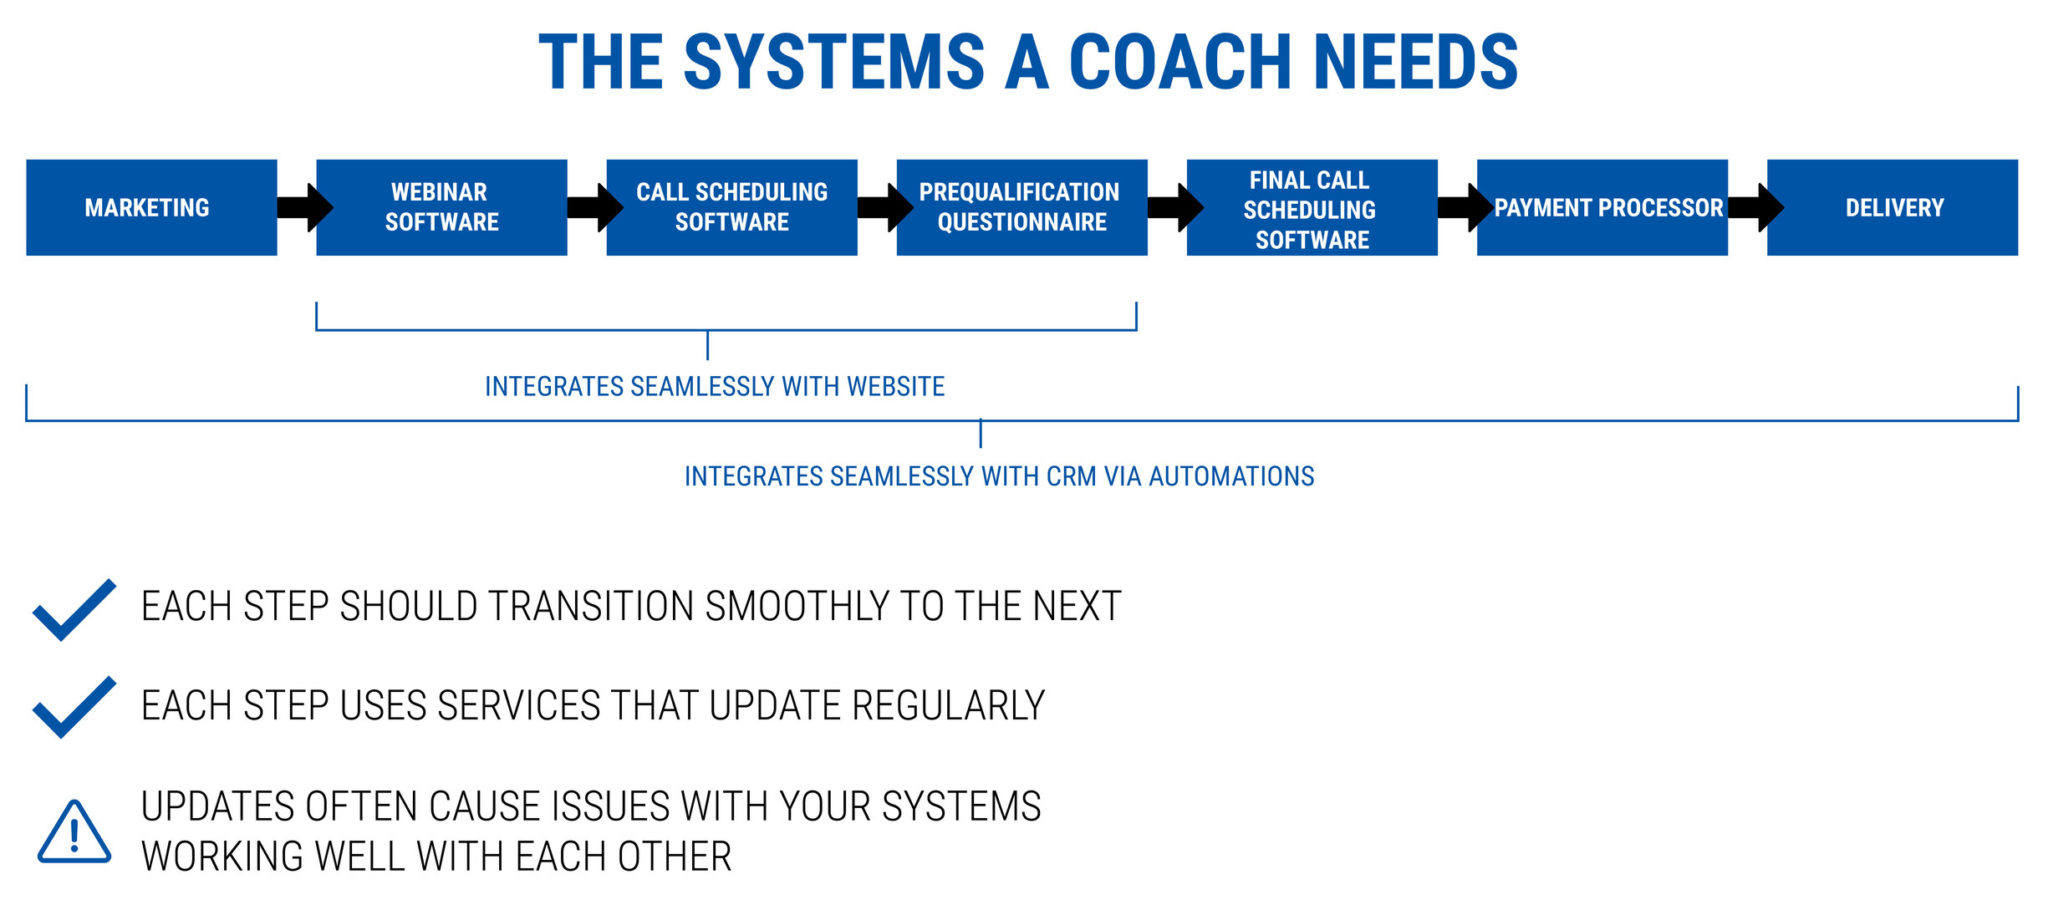 the systems a coach needs - starting a coaching business while working full-time